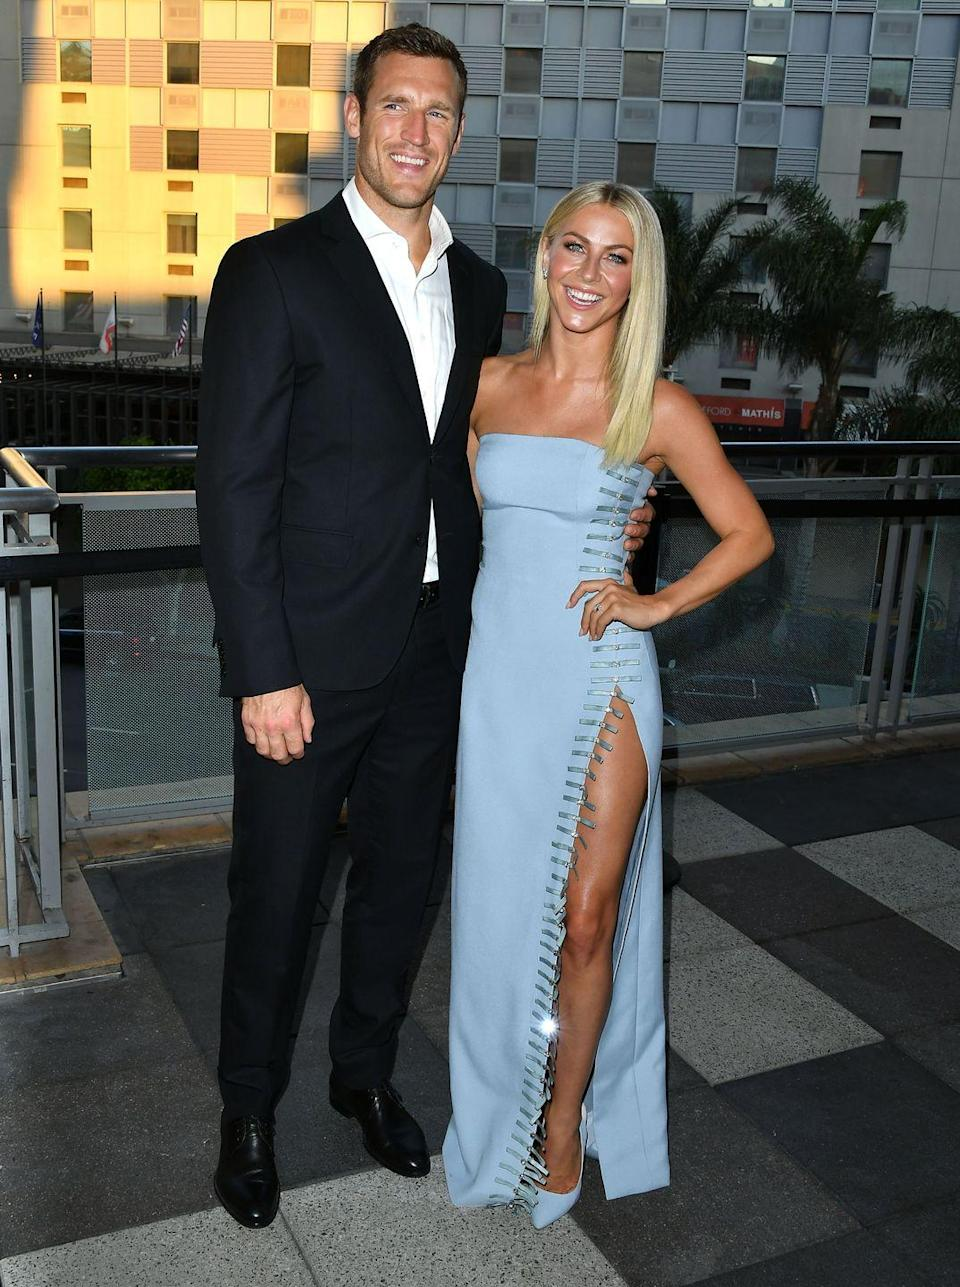 "<p>Everything in Julianne and Brooks's relationship seemed like smooth sailing until 2020. <em><a href=""https://people.com/tv/julianne-hough-brooks-laich-have-been-having-problems-marriage/"" rel=""nofollow noopener"" target=""_blank"" data-ylk=""slk:People"" class=""link rapid-noclick-resp"">People</a></em> reported in early 2020 that ""they've been having problems for months,"" because ""she's very independent and a free spirit, and that's been tough for Brooks and their marriage."" </p><p>By May, <em><a href=""https://people.com/tv/julianne-hough-brooks-laich-relationship-hasnt-changed/"" rel=""nofollow noopener"" target=""_blank"" data-ylk=""slk:People"" class=""link rapid-noclick-resp"">People</a></em> revealed Brooks and Julianne were quarantining away from each other in separate states, but it didn't seem to be a big deal since they were already used to living ""separate lives."" On May 29, they announced their breakup in a joint statement to <em><a href=""https://www.cosmopolitan.com/entertainment/celebs/a30798719/julianne-hough-brooks-laich-divorce/"" rel=""nofollow noopener"" target=""_blank"" data-ylk=""slk:People"" class=""link rapid-noclick-resp"">People</a></em>. <a href=""https://www.usmagazine.com/celebrity-news/news/julianne-hough-files-for-divorce-from-brooks-laich-5-months-after-split/"" rel=""nofollow noopener"" target=""_blank"" data-ylk=""slk:Julianne filed for a dissolution of marriage"" class=""link rapid-noclick-resp"">Julianne filed for a dissolution of marriage</a> in November. </p>"